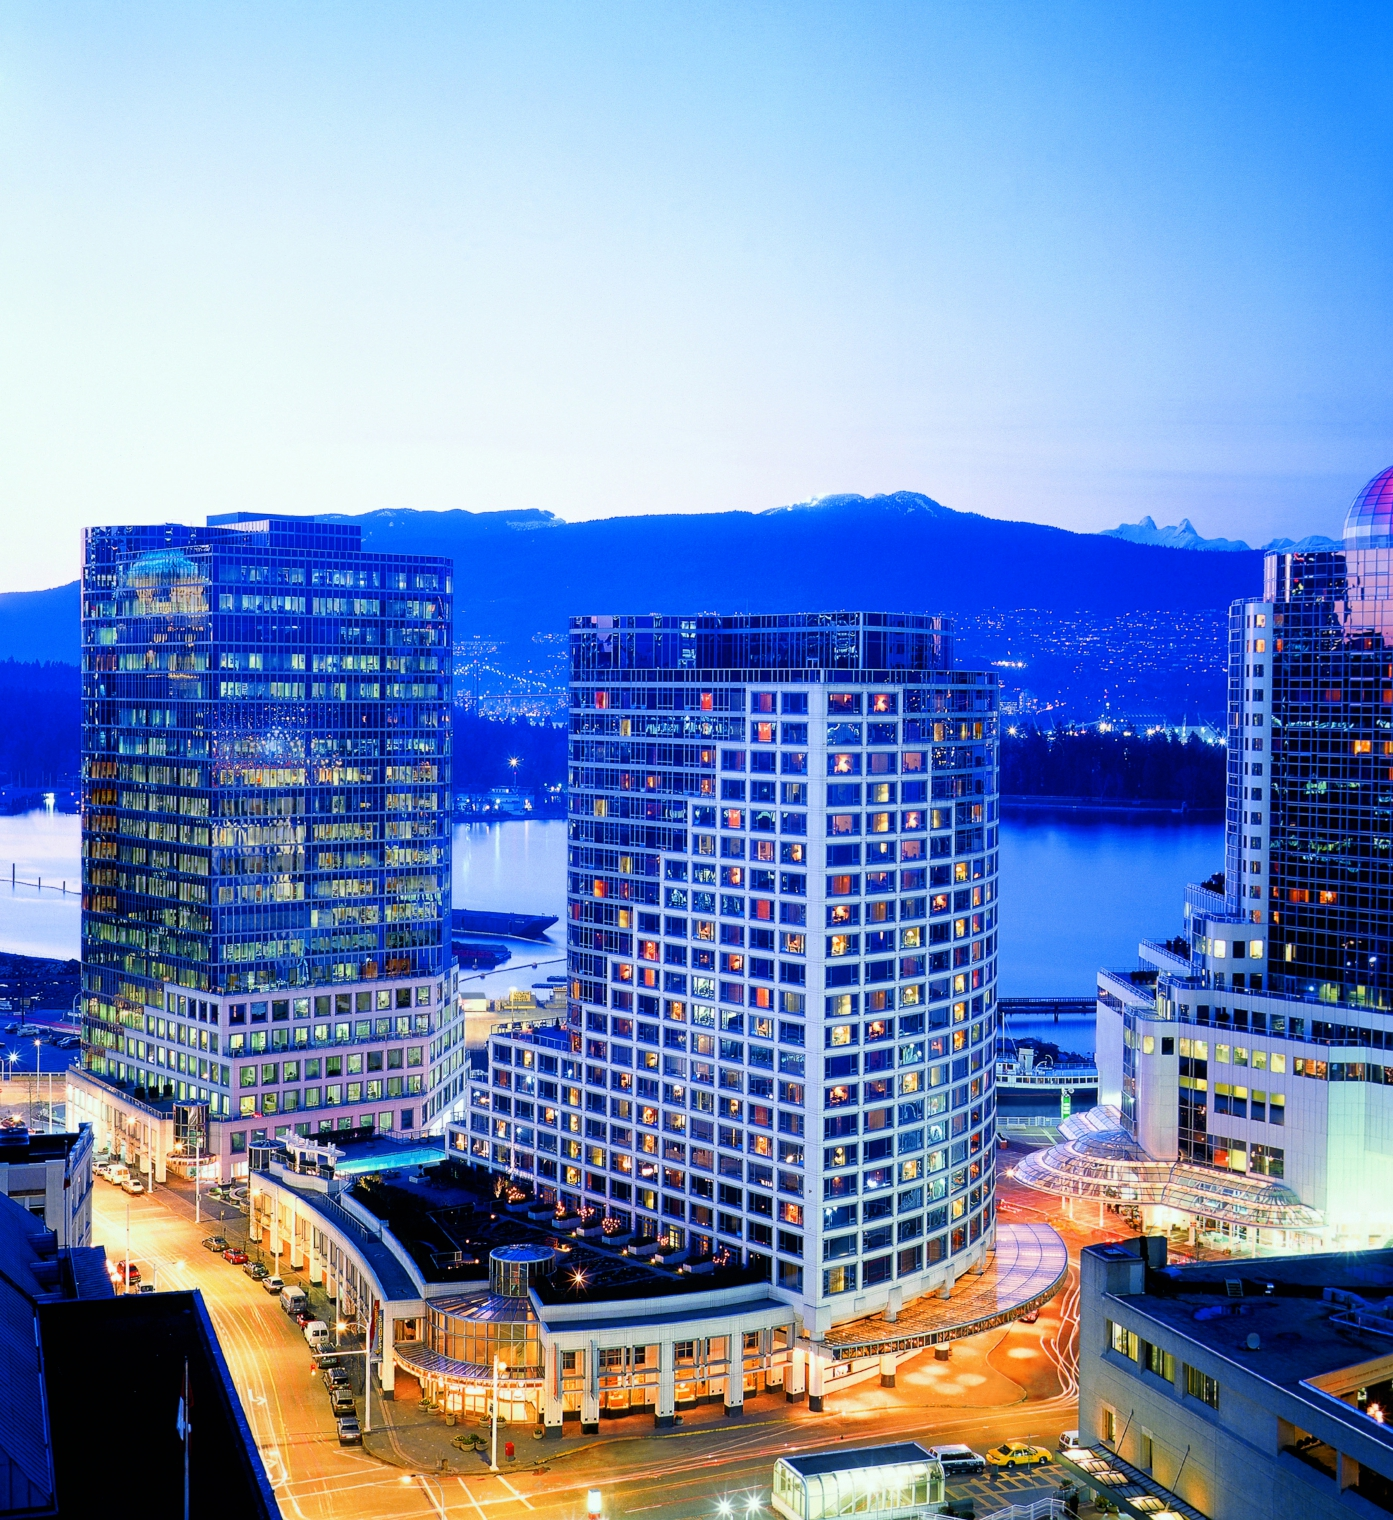 Vancouver Bc Canada: The Fairmont Waterfront - Vancouver